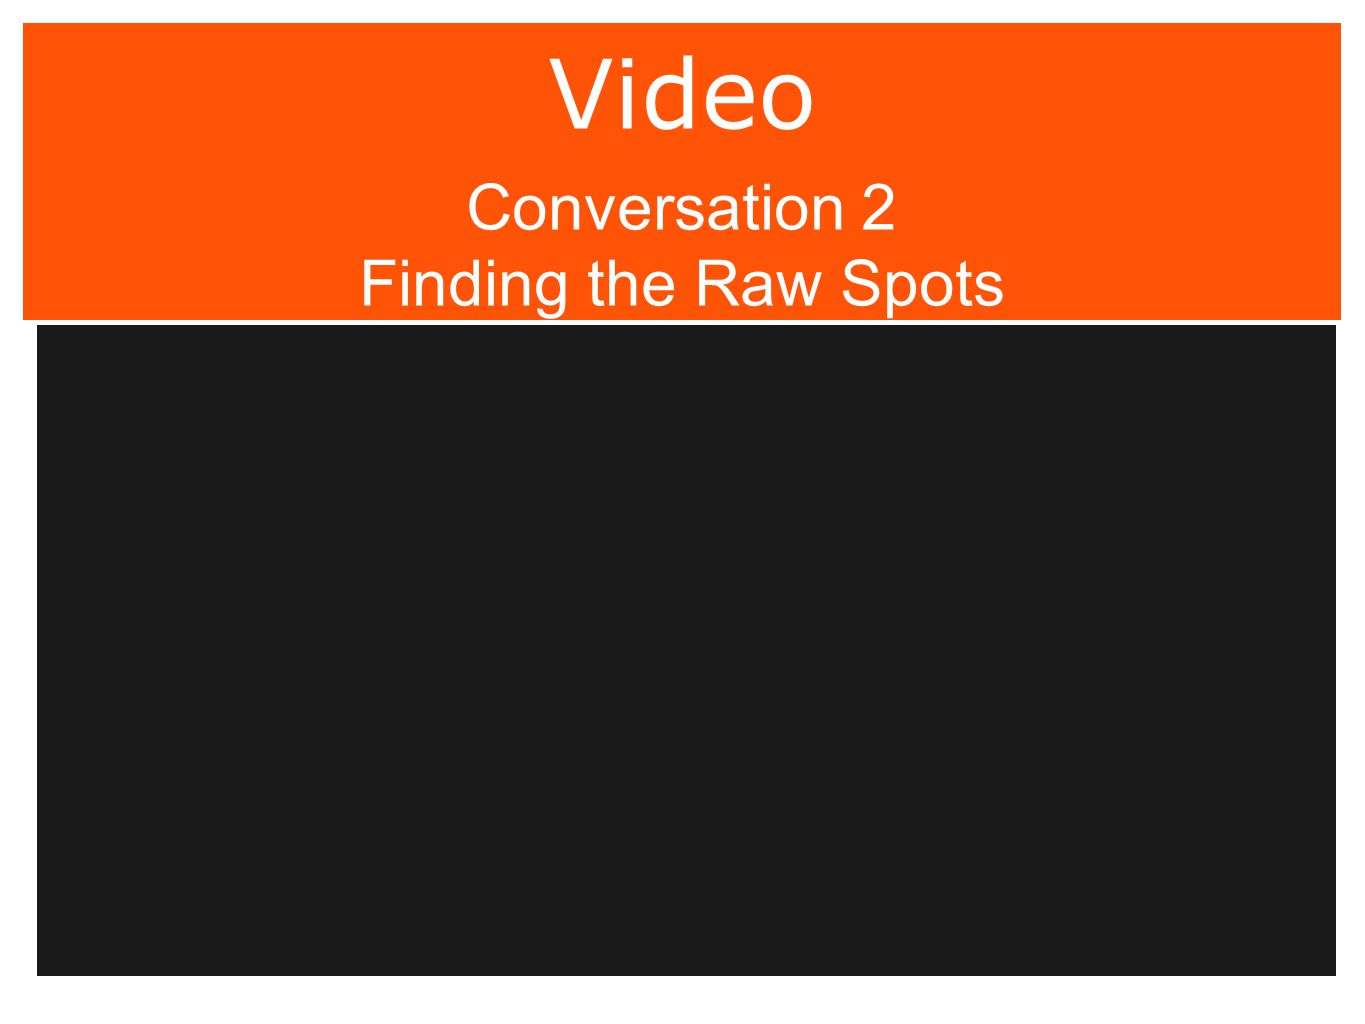 Video Conversation 2 Finding the Raw Spots